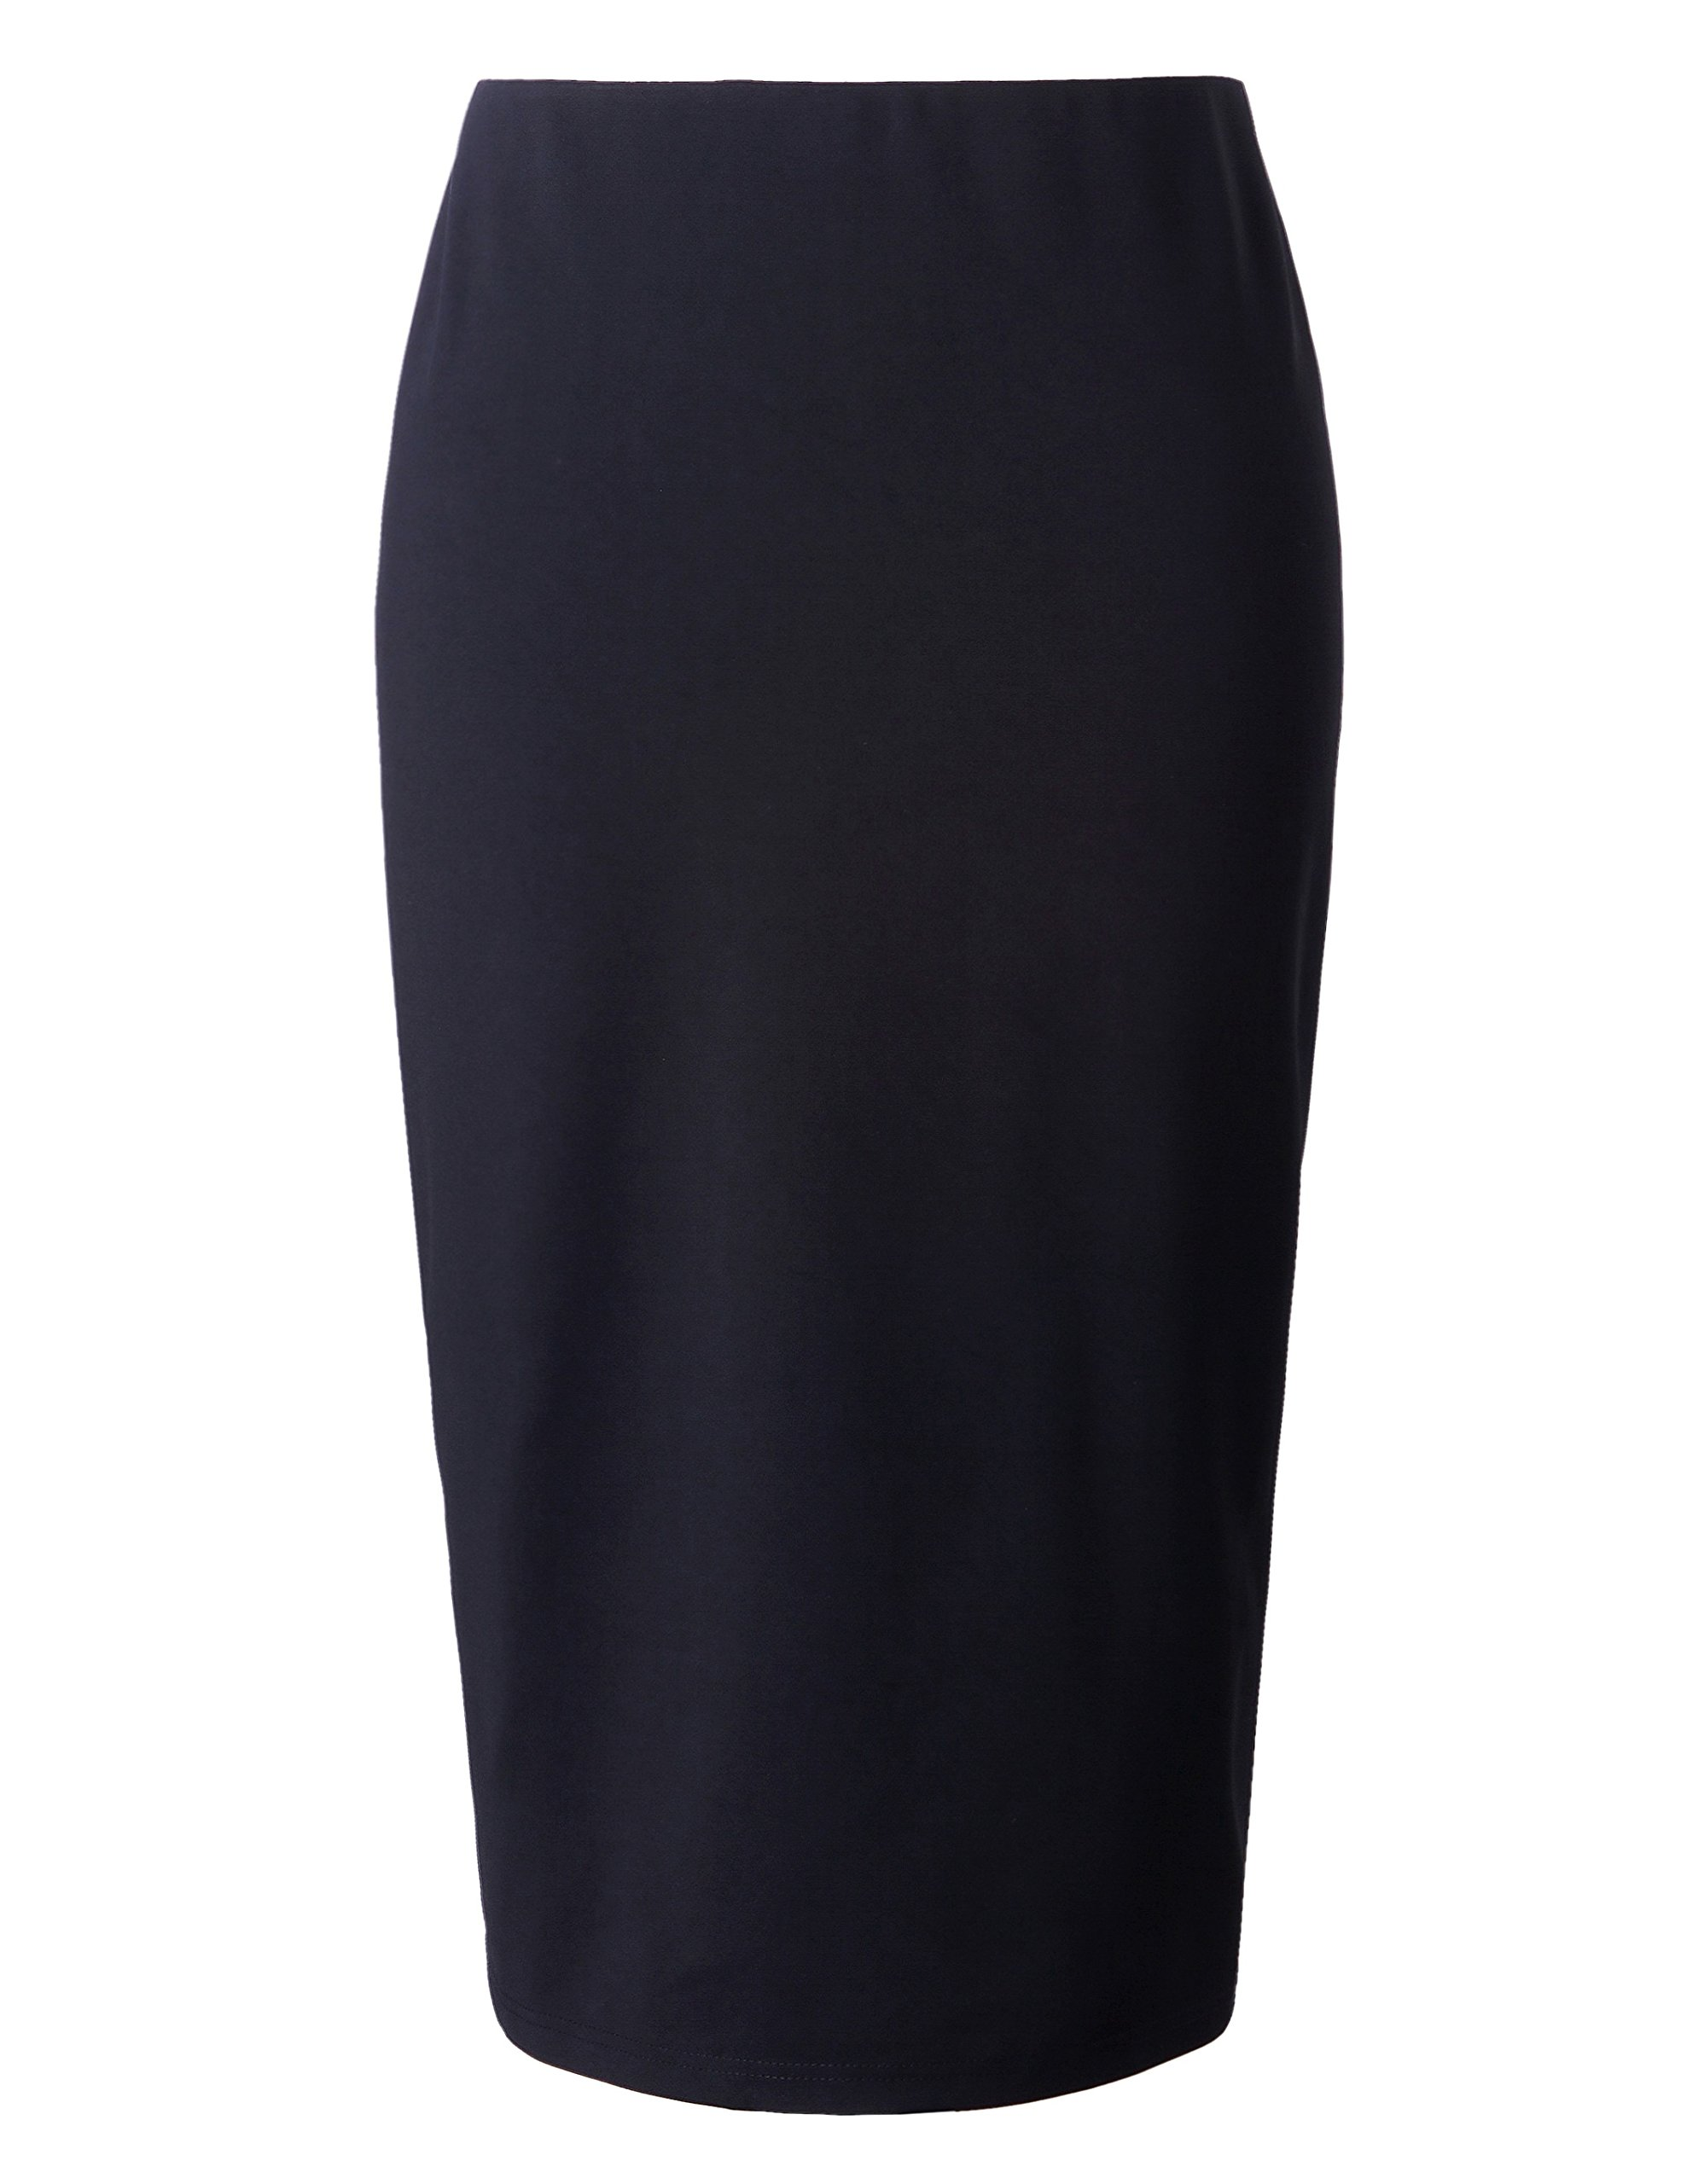 Chicwe Women's Plus Size Stretch Long Tailored Calf Length Pencil Skirt with Elastic Waistband 3X